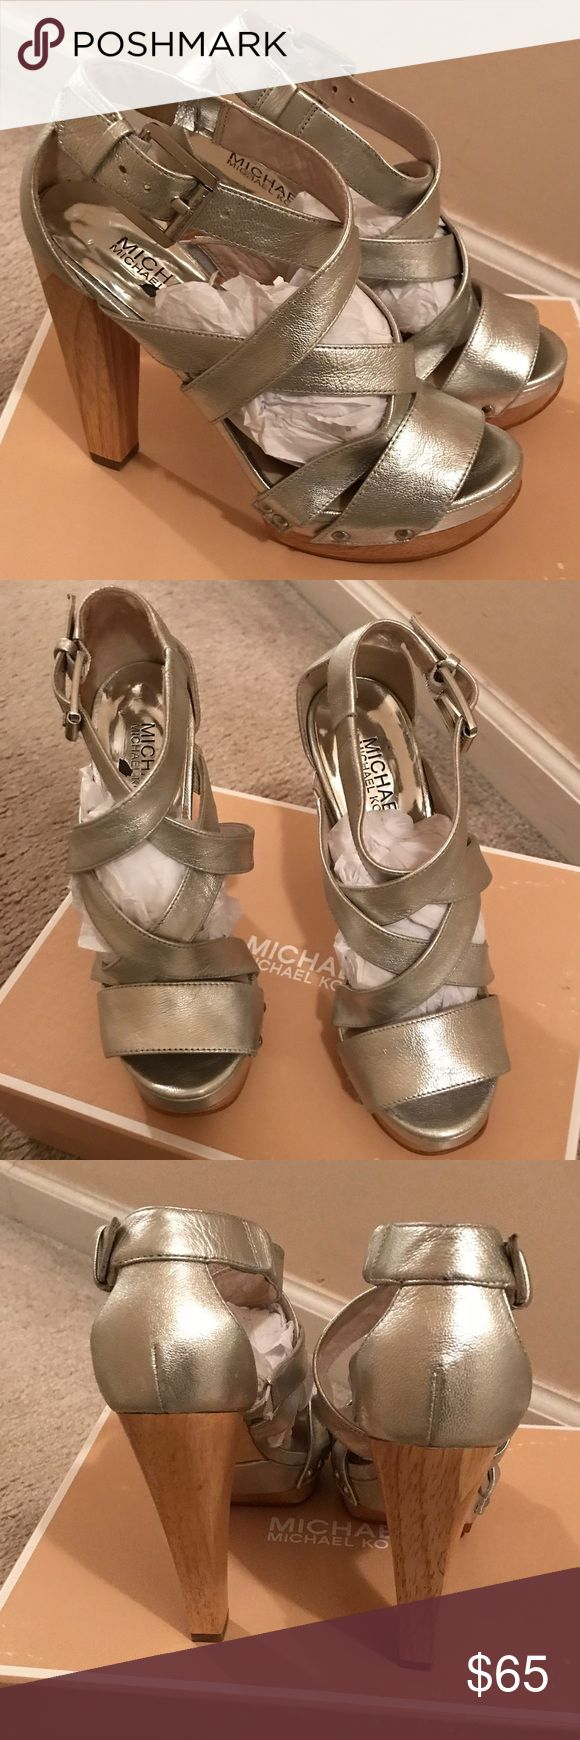 Michael MICHAEL KORS Silver Strappy Sandals Sz 5.5 Michael MICHAEL KORS Silver Strappy Sandals Sz 5.5. Gorgeous silver Strappy sandals for almost any occasion. Perfect with sundresses, jeans or capris. These sandals can be worn with anything. Gently used GUC 🚫Trades, paypal, any questions in the comments regarding price please use the offer button or they will be ignored🚫 Michael Kors Shoes Sandals